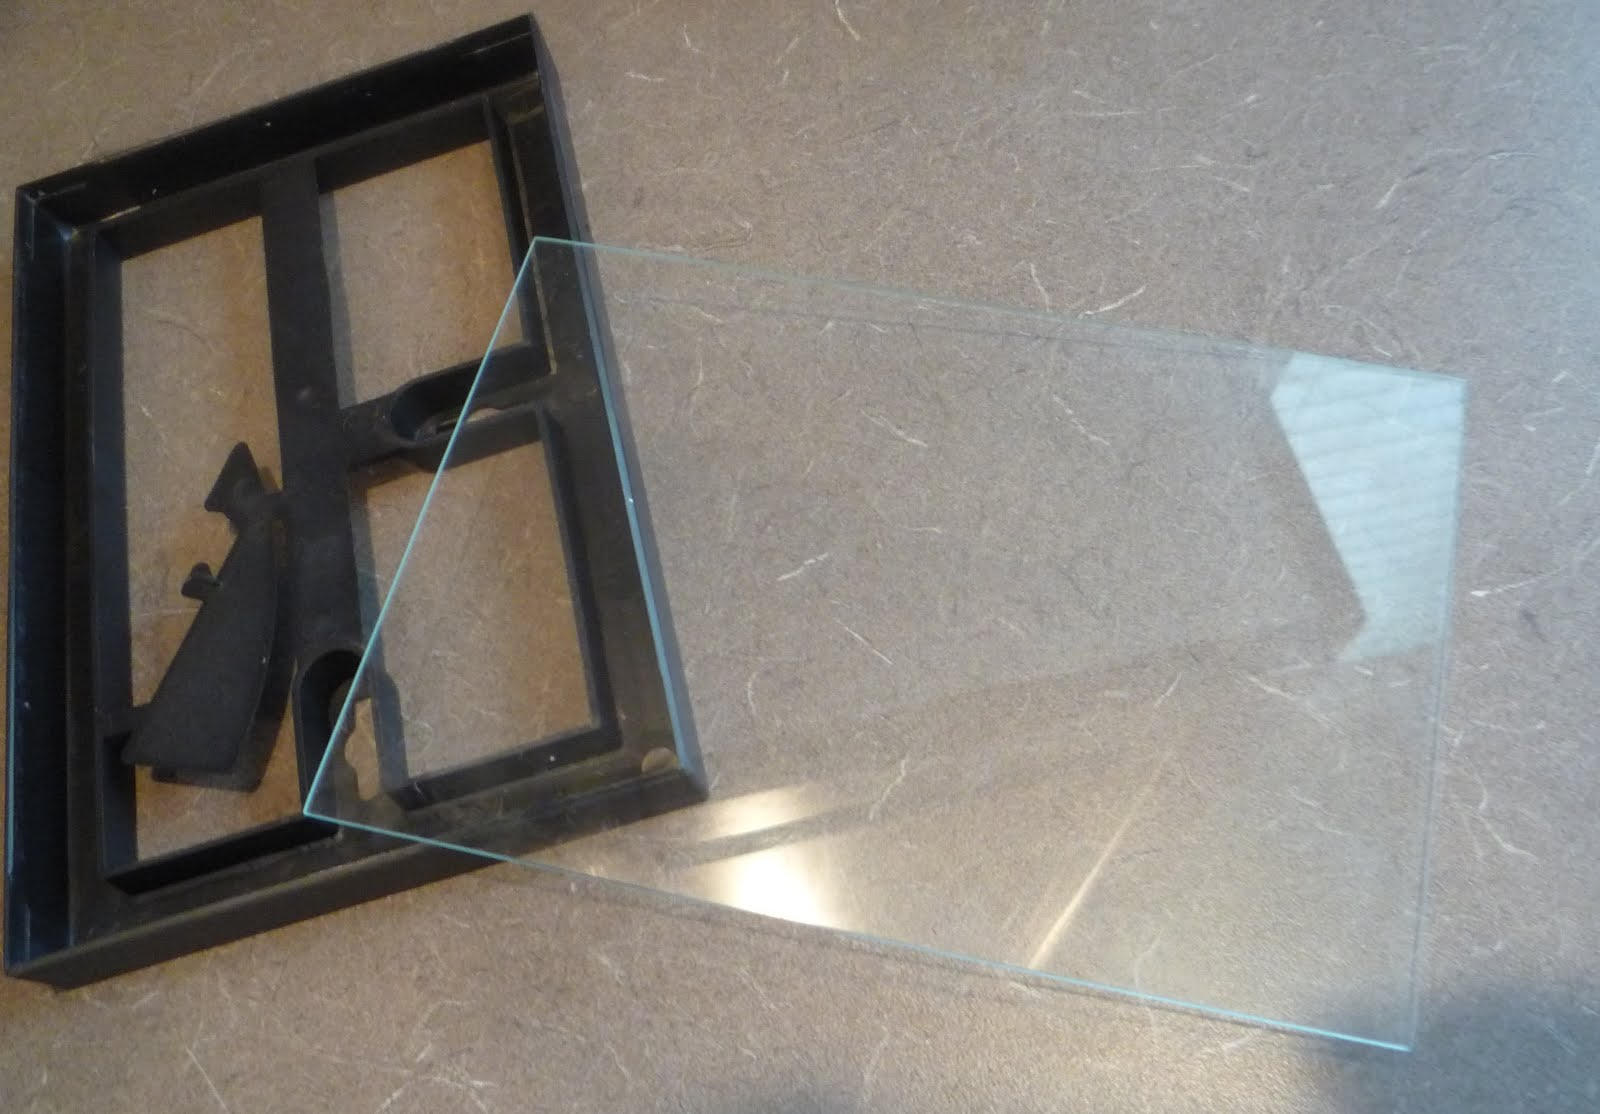 c6de5f6840a Carefully pop the glass out of the second photo frame and place into hinged  frames along with print cut to size.